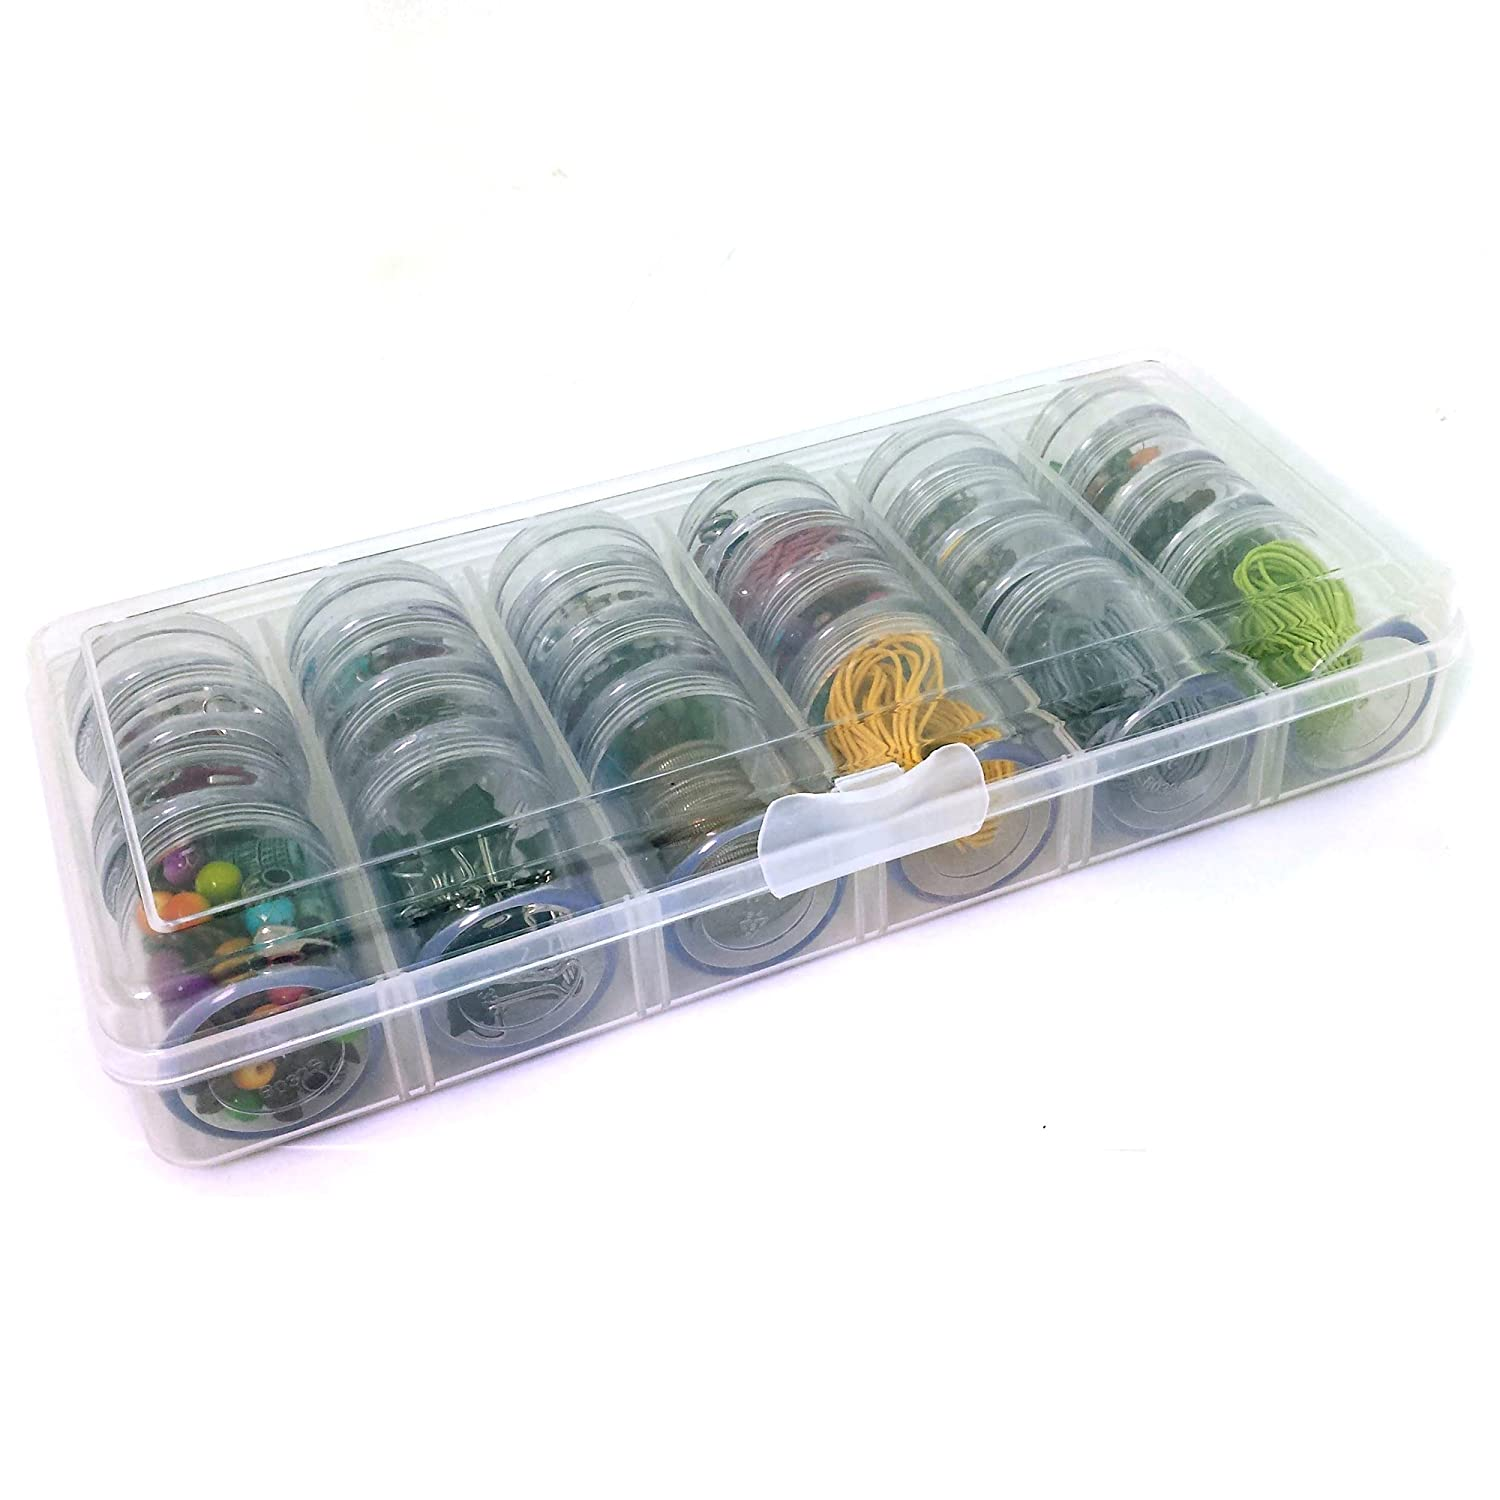 Storage Box 24 Round Individual Screw Top Containers Multi-functional Organizer For Crafting Sewing Beads Jewelry Buttons Paylak CNTB032